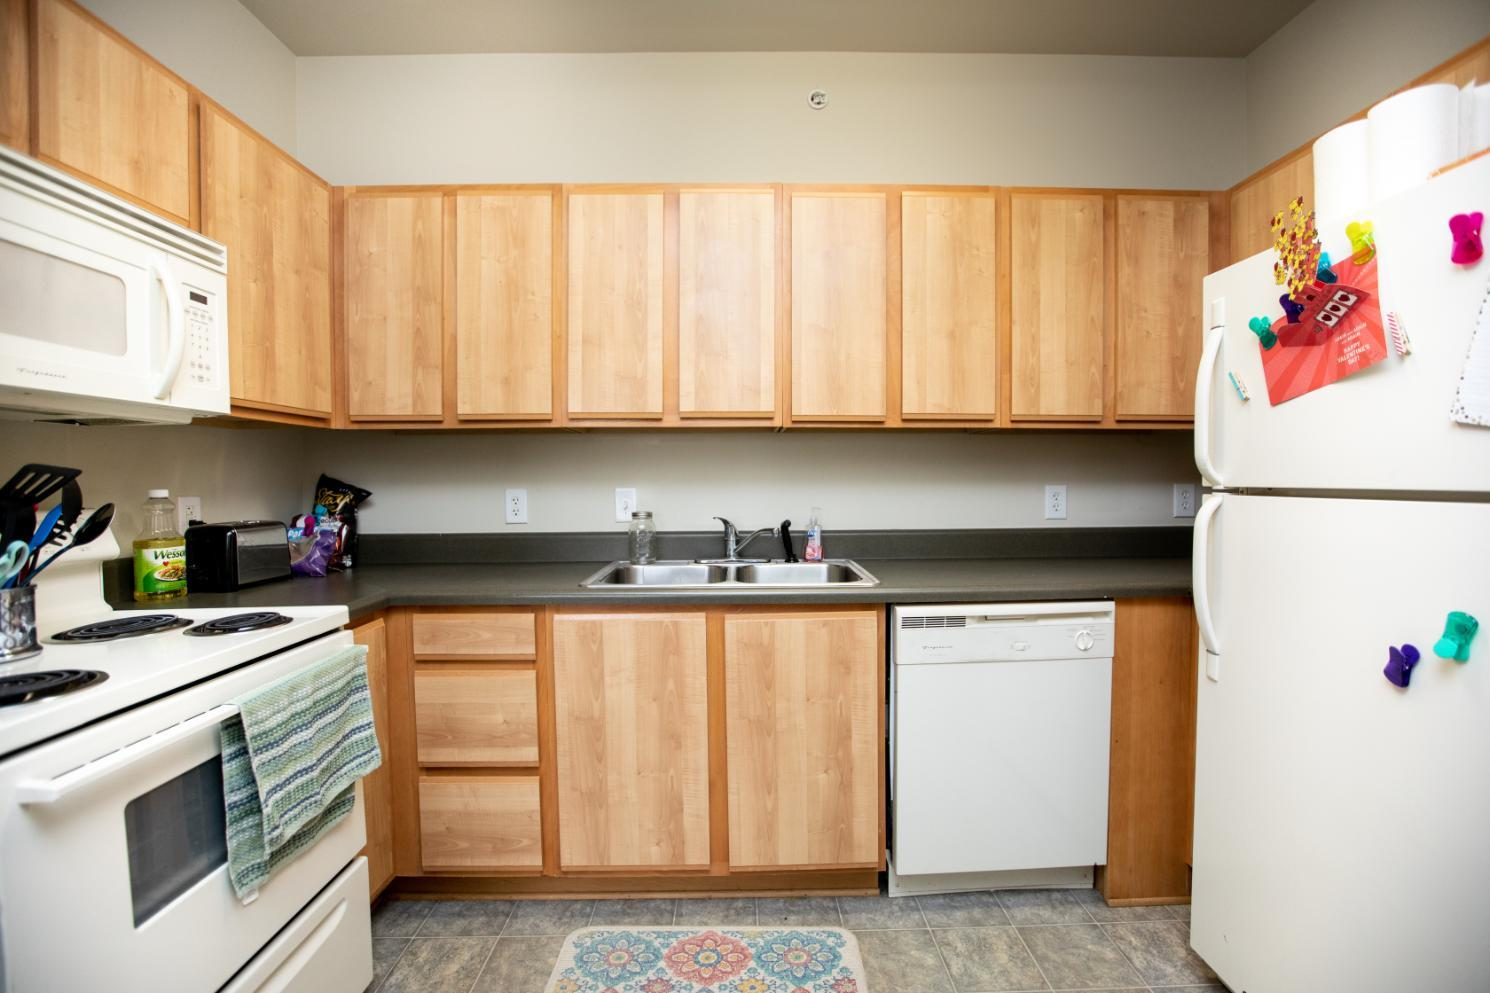 Longwood Landings 4 Bedroom Apartment ; Kitchen with stove, dishwasher, oven, microwave over stove, double sink, refrigerator, wall cabinets and counter cabinets.